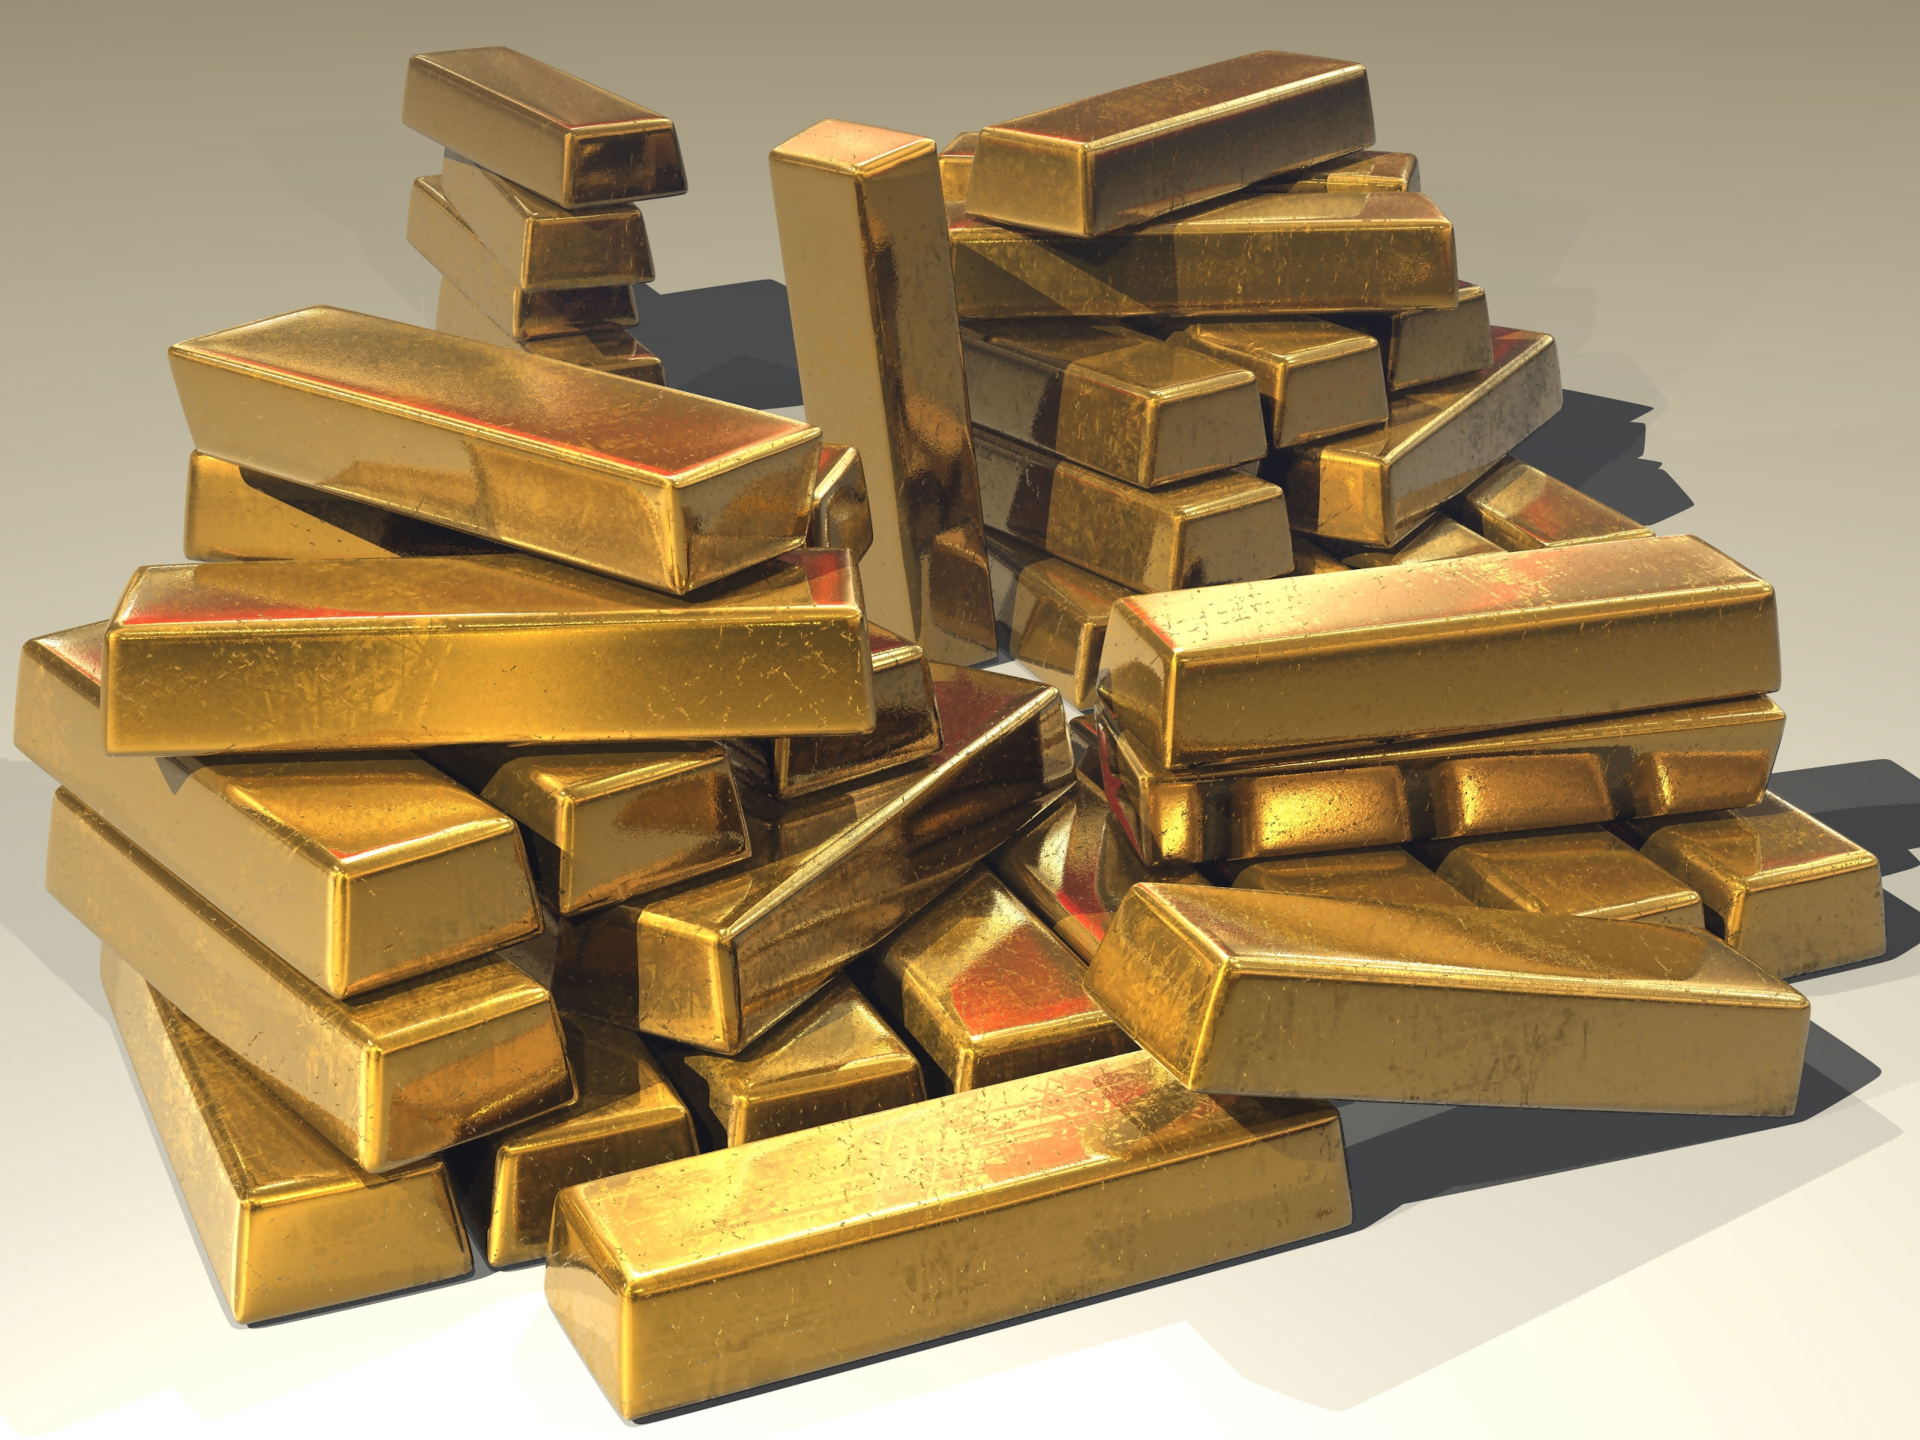 China at the centre of the biggest gold counterfeiting scandal discovery in human history